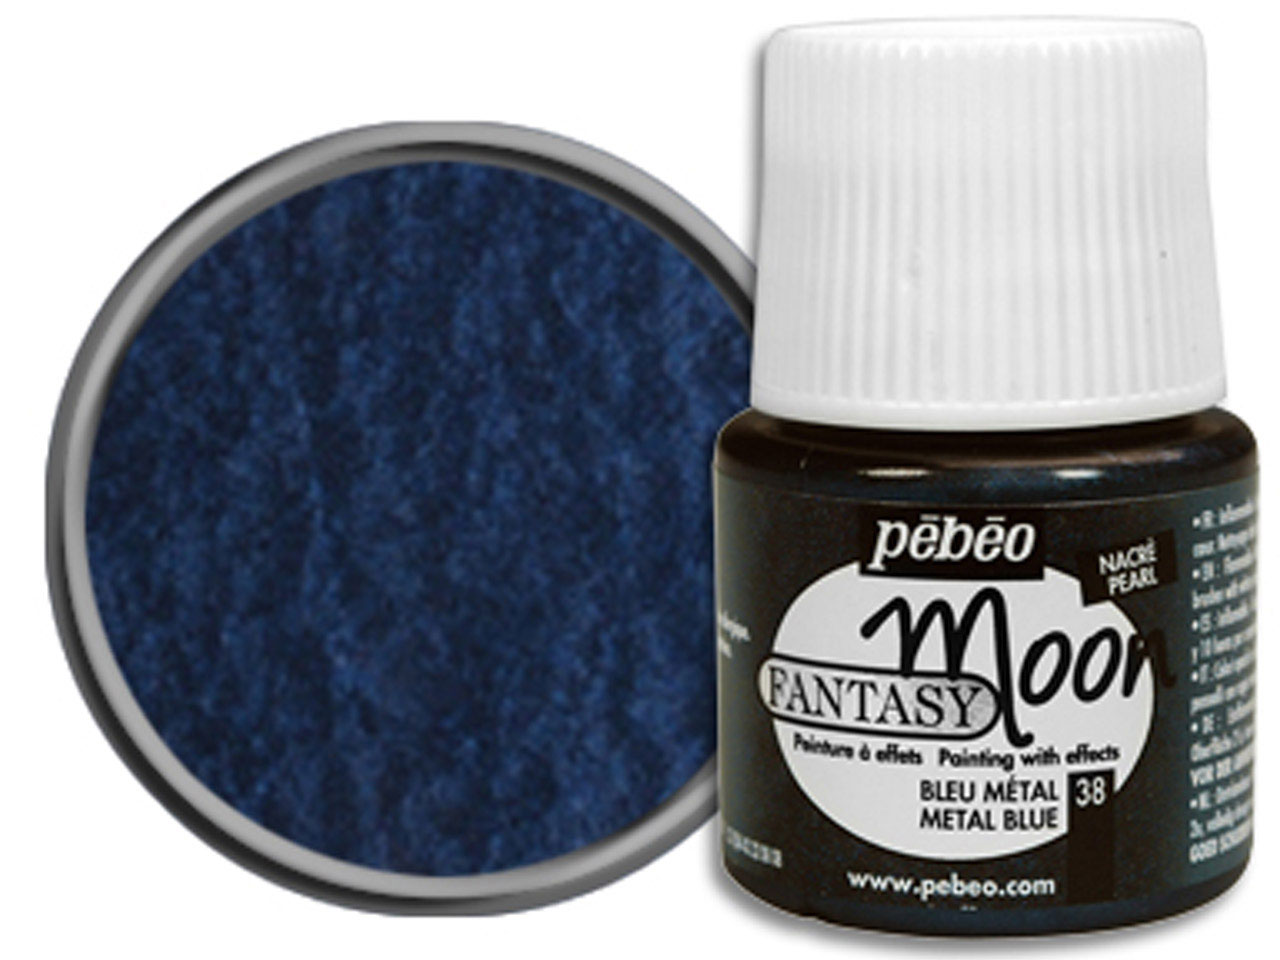 Pebeo Fantasy Moon, Metal Blue,    45ml Un1263